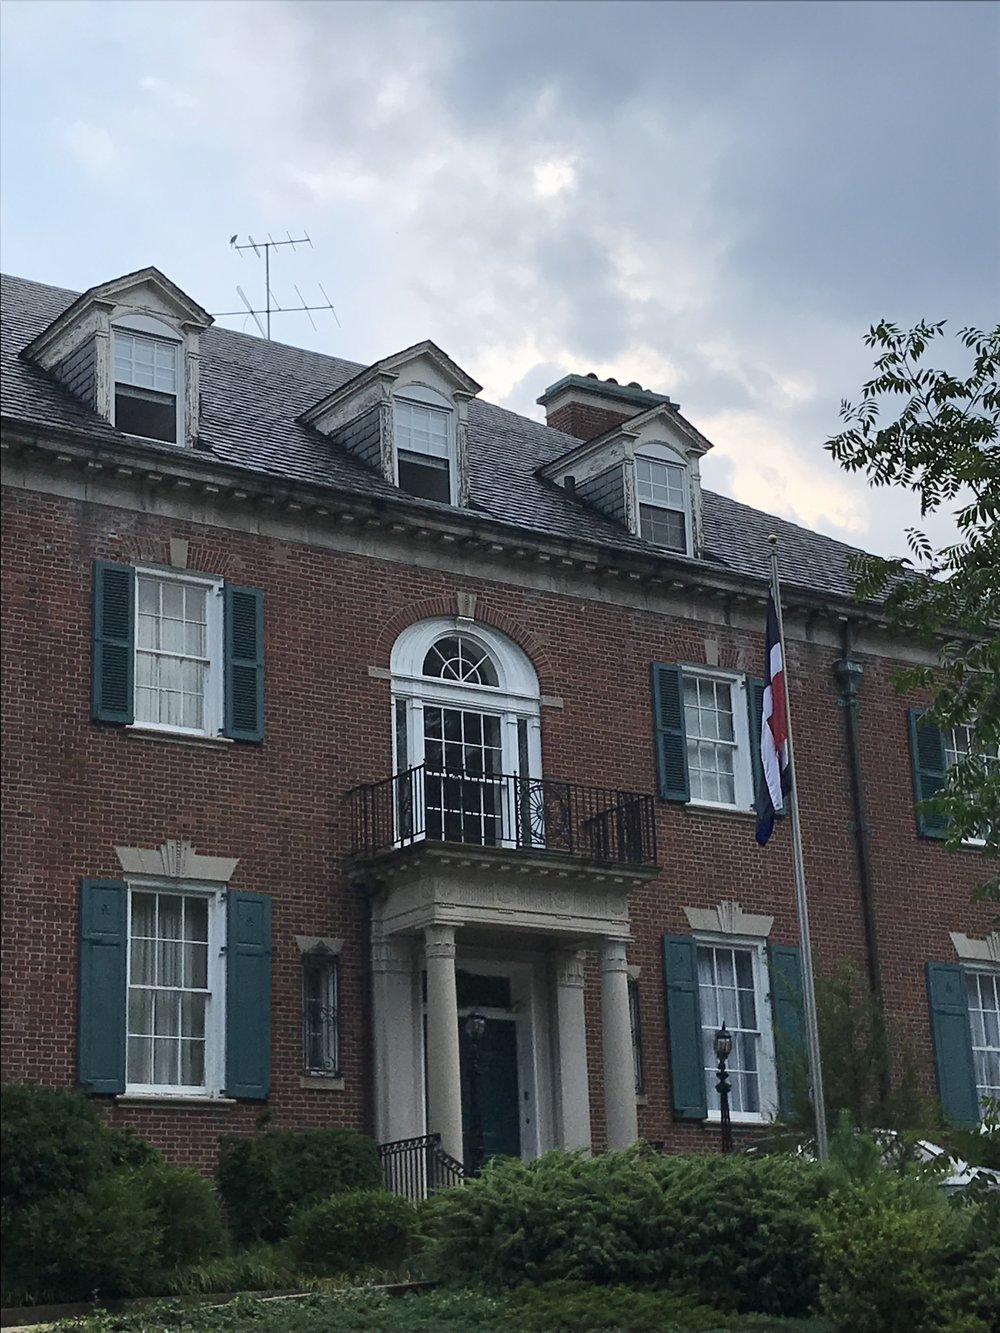 The Residence of the Ambassador of the Dominican Republic.